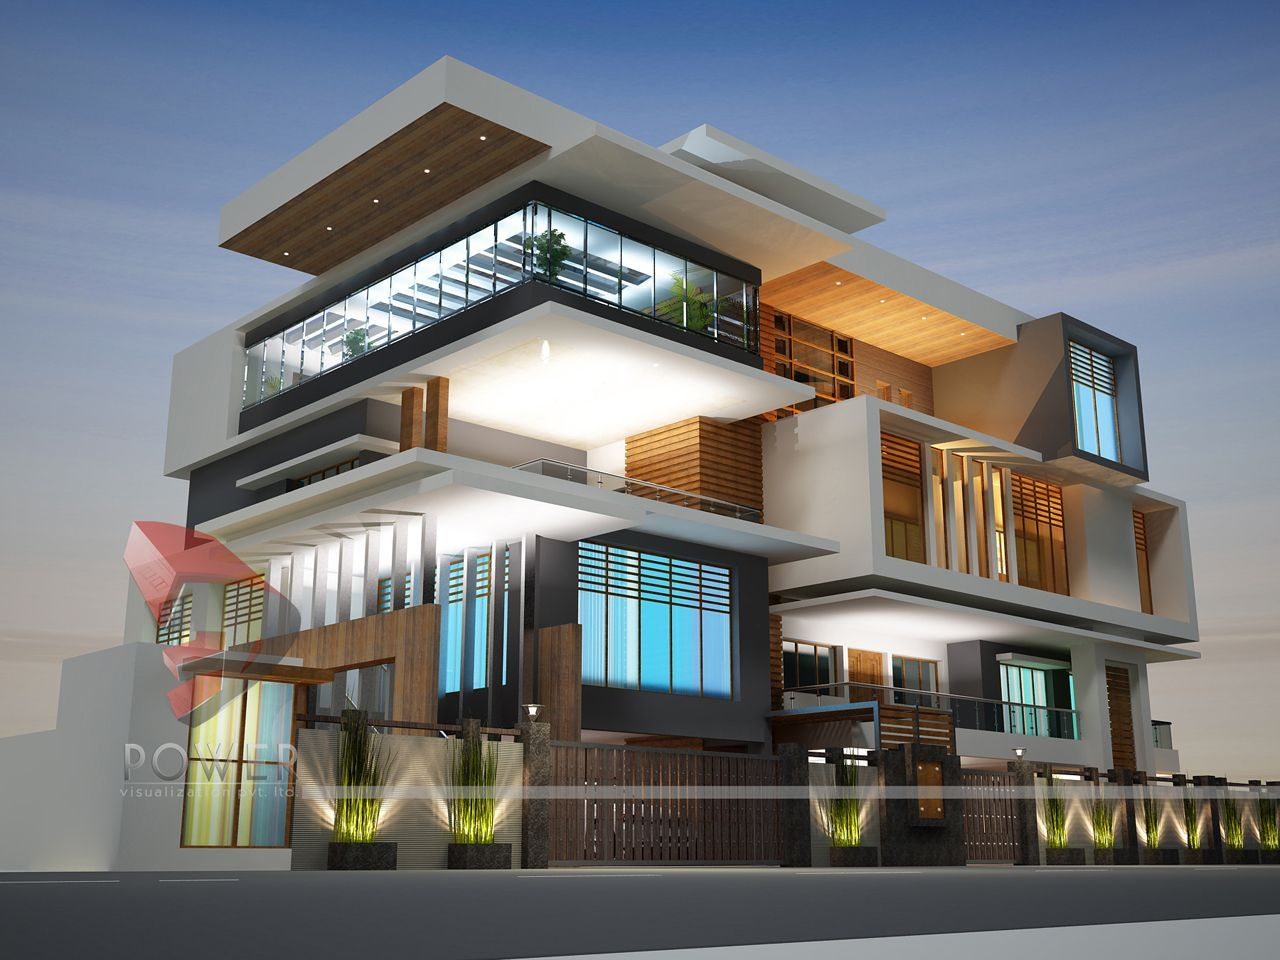 Modern house design in india architecture india modern for Best architecture home design in india